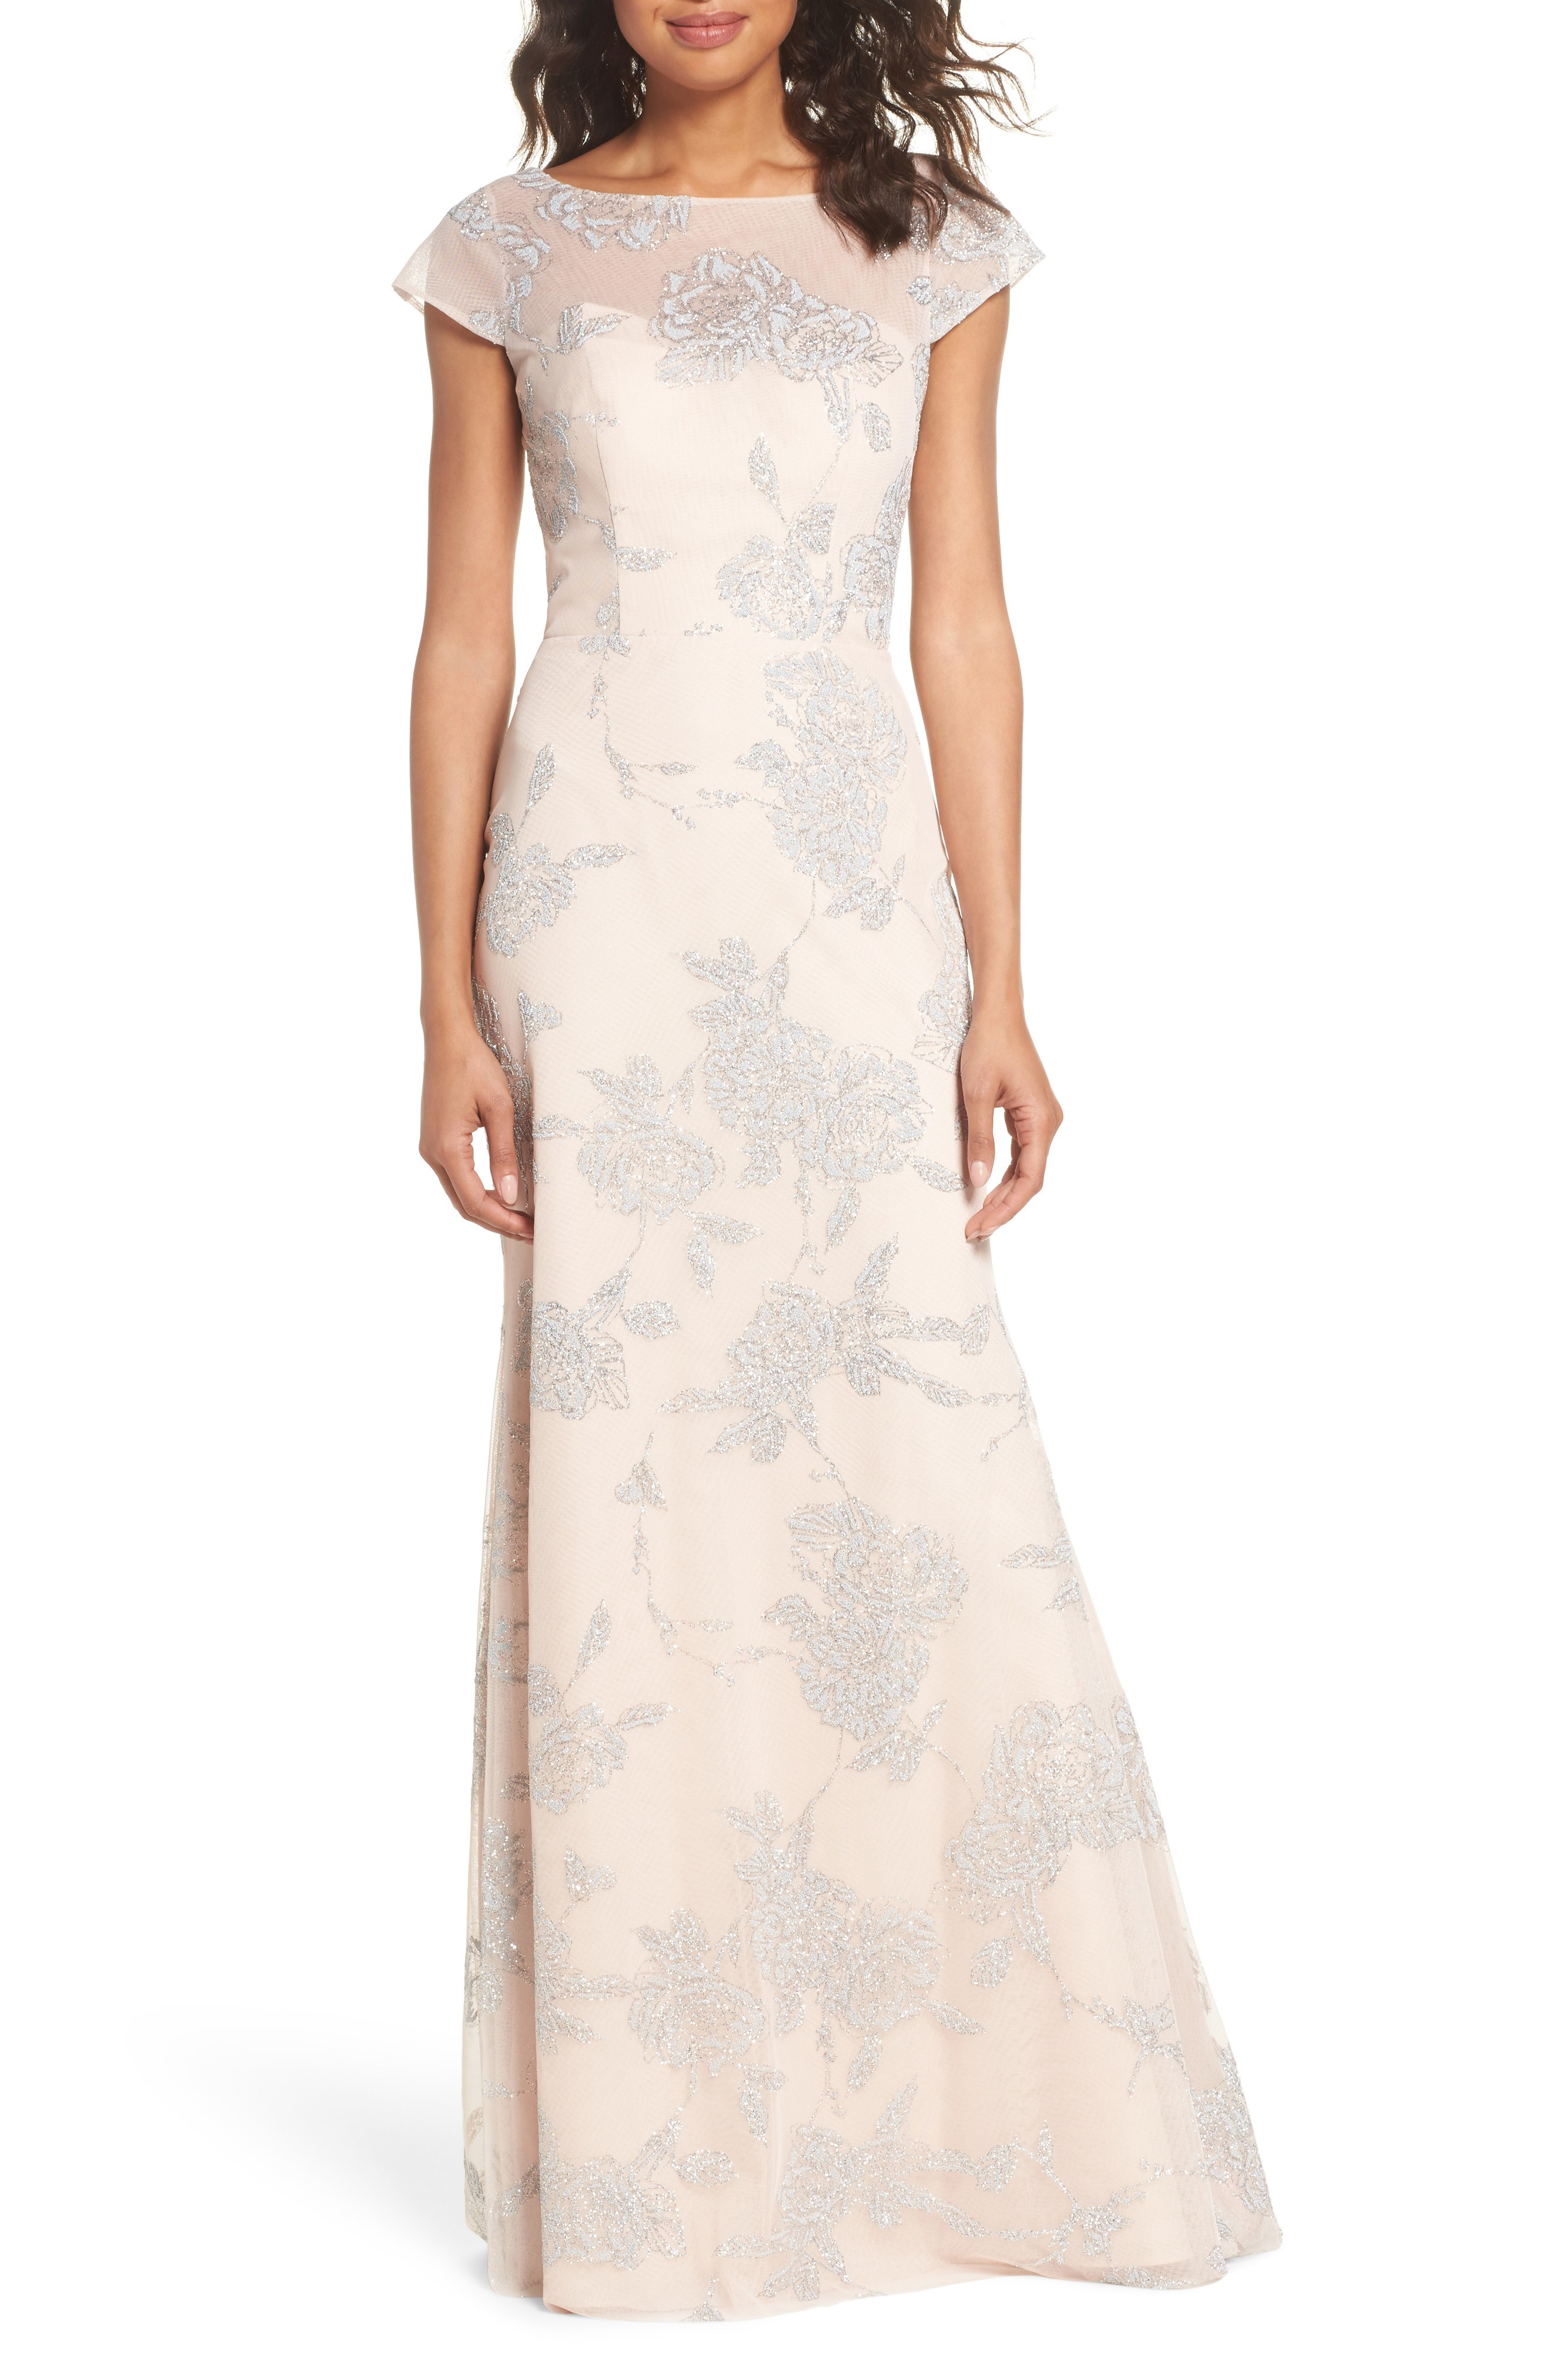 HAYLEY PAIGE OCCASIONS Embellished Bateau Neck Almond Gown